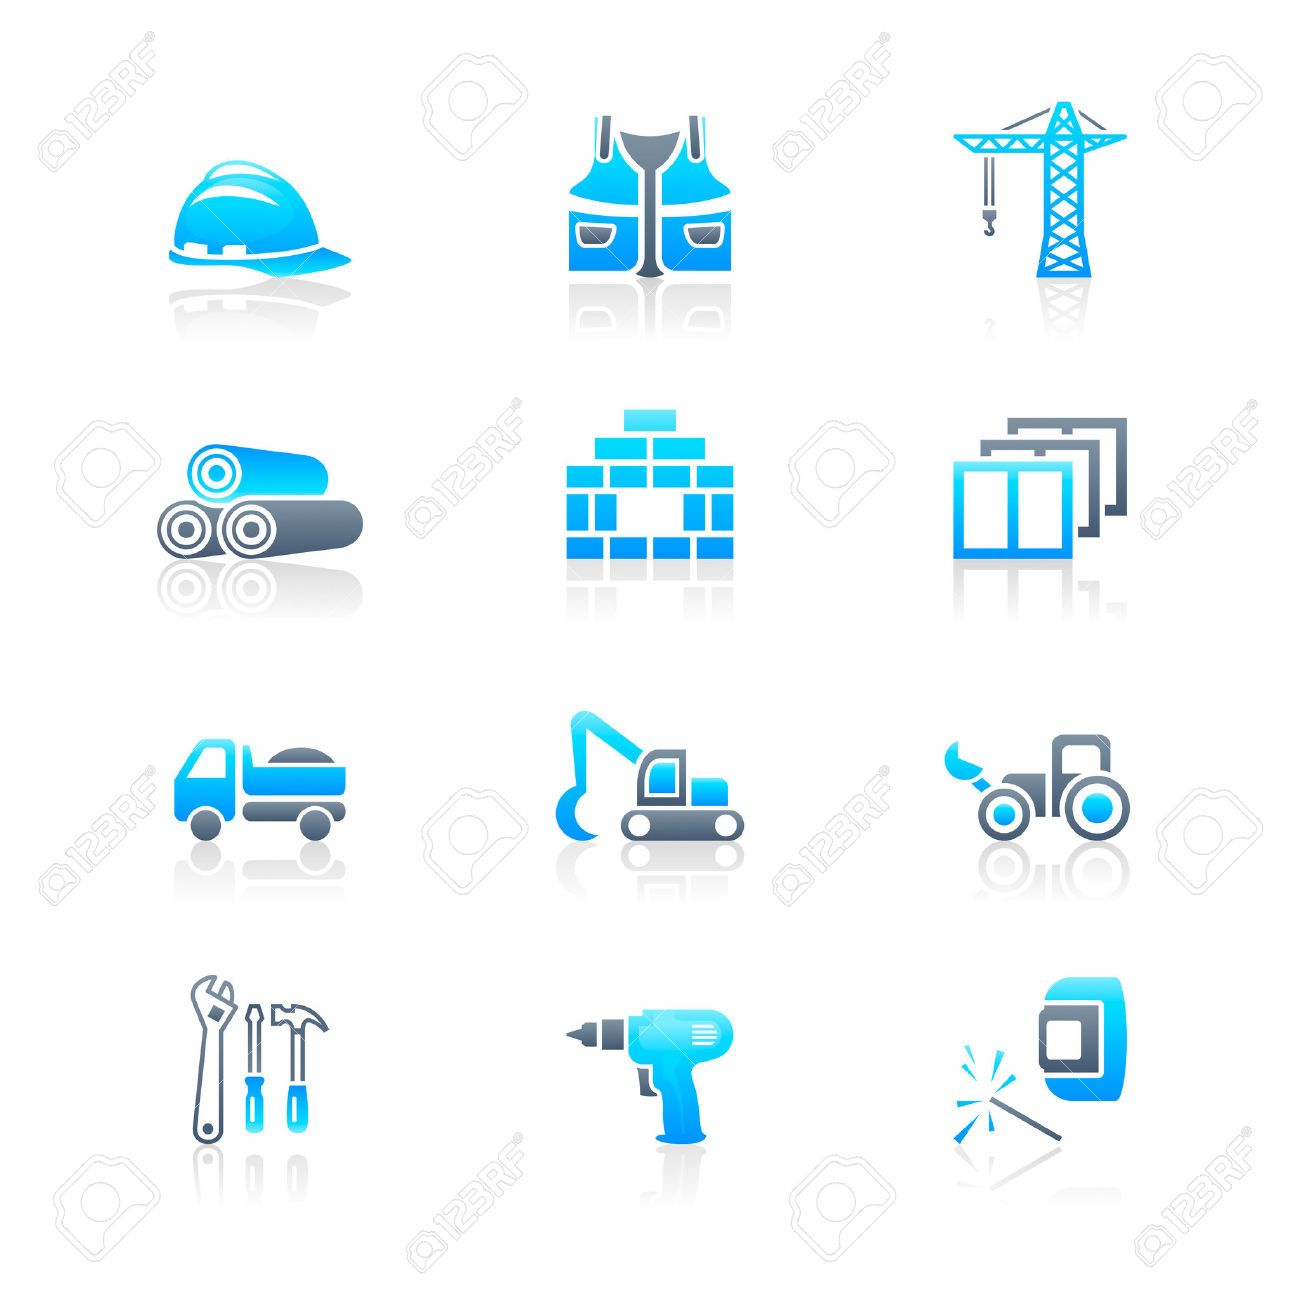 Construction Tools, Transportation, Materials And More Icon Set.